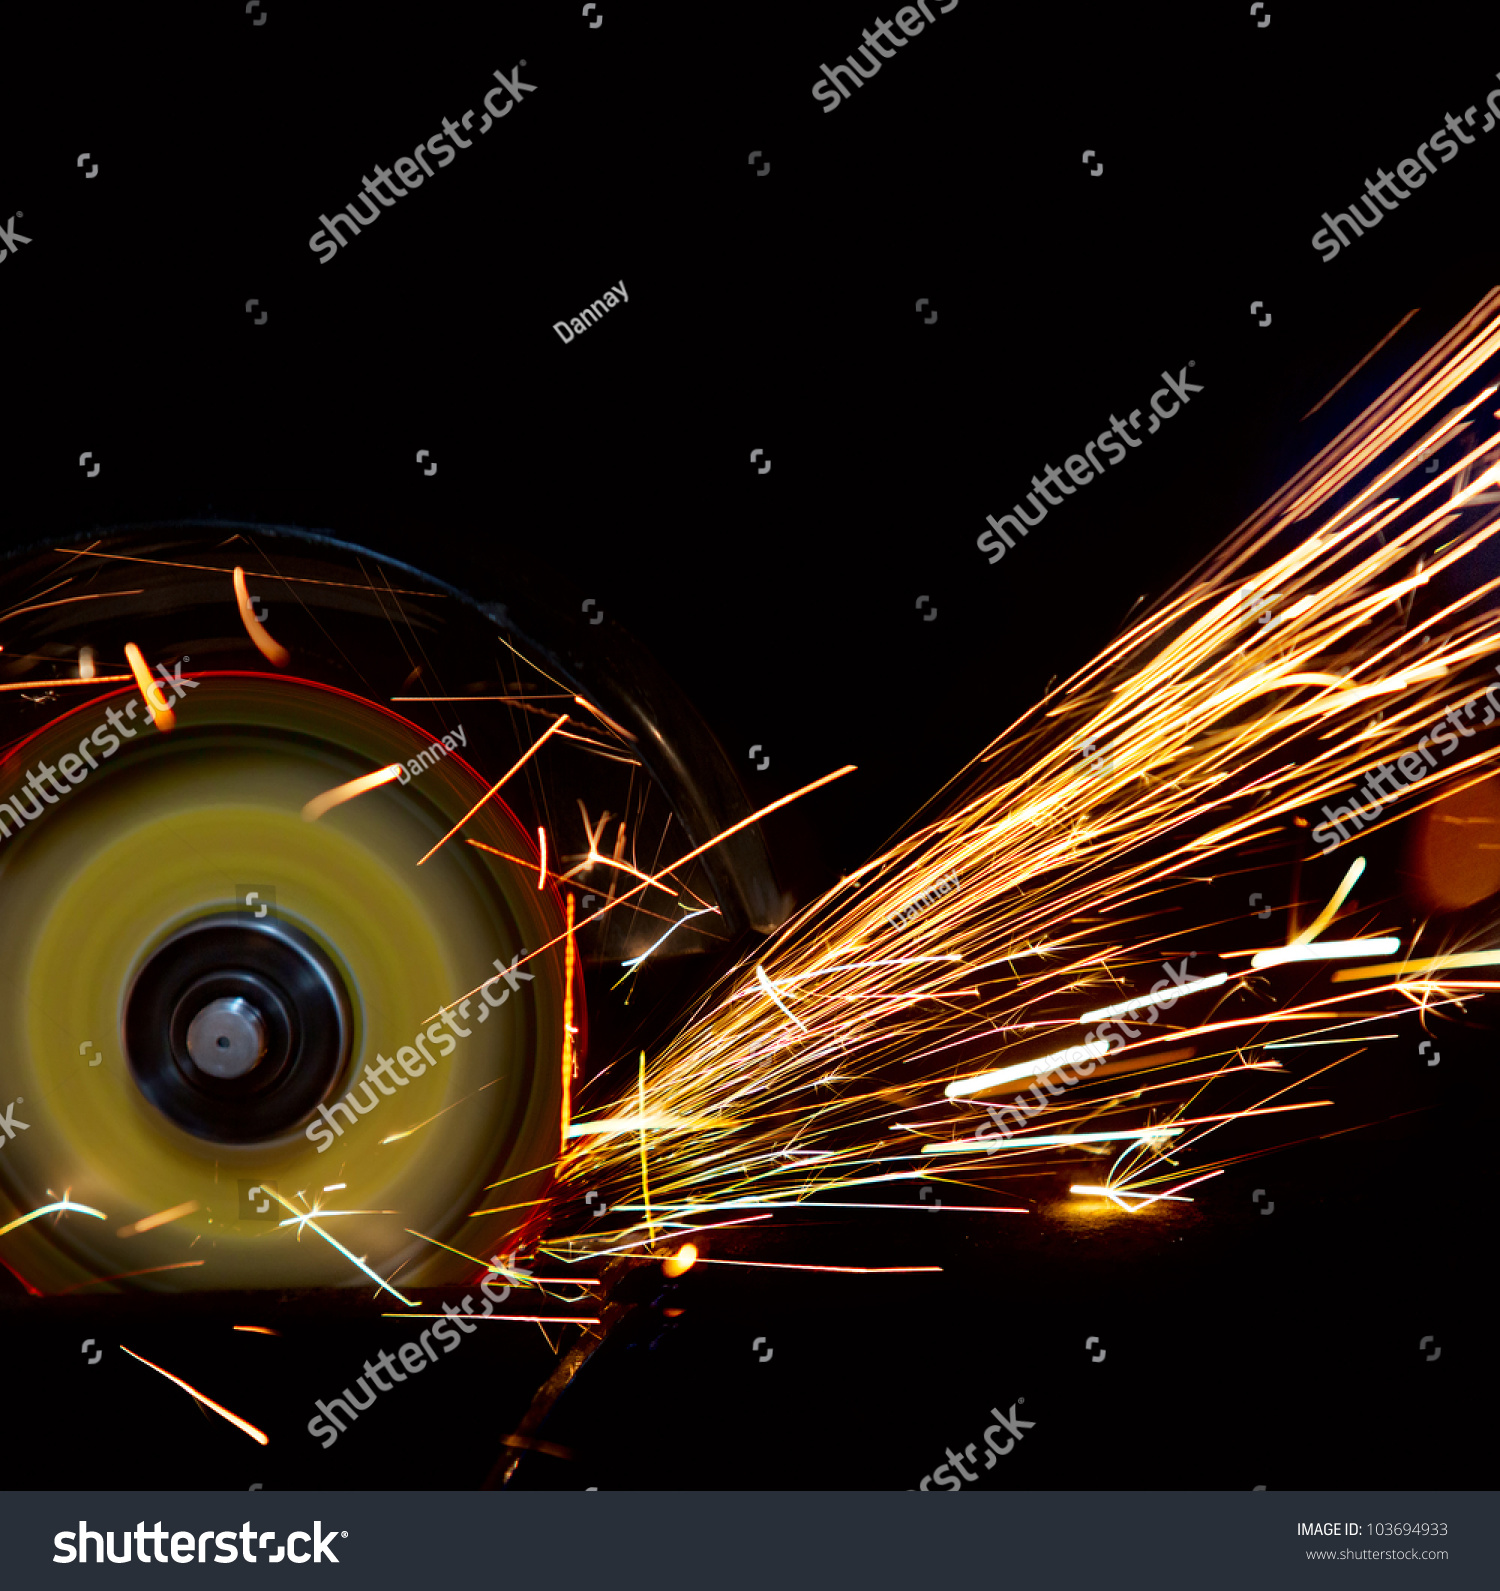 Stock Photo Spark Spray